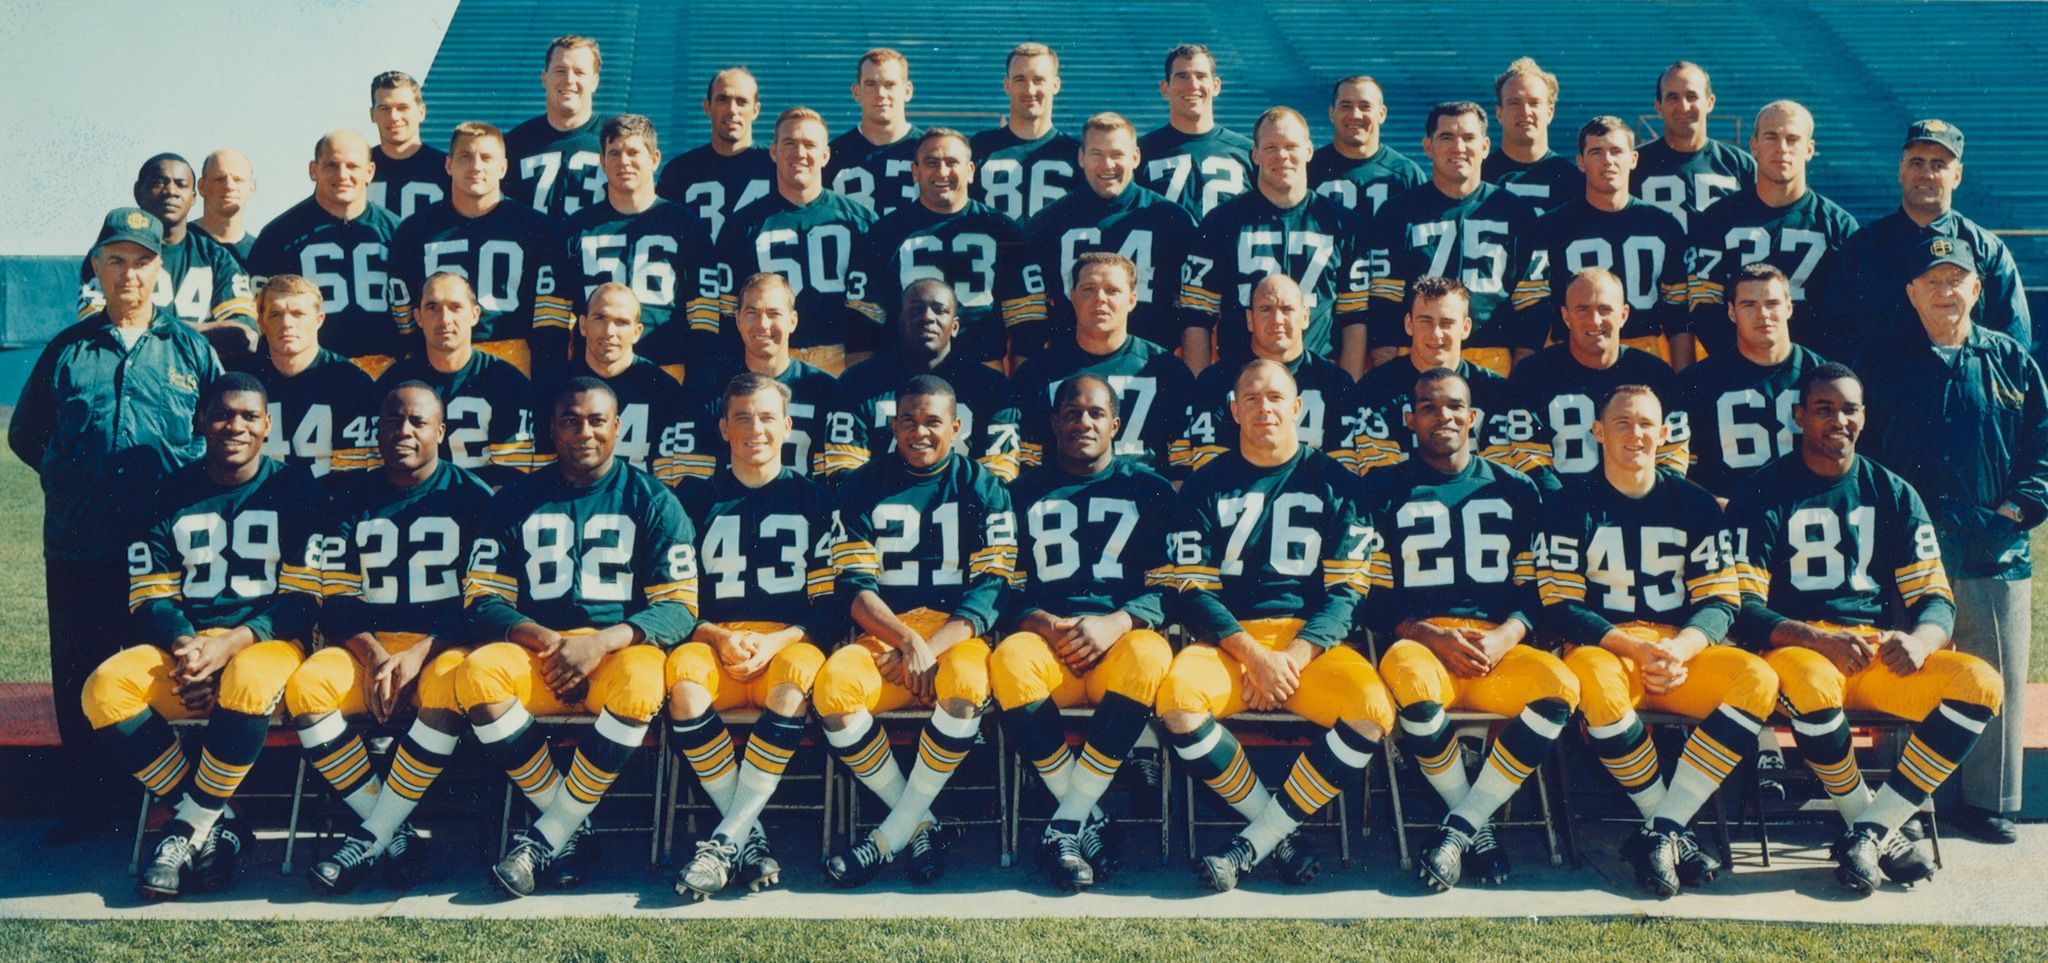 1966 Super Bowl Champs- Green Bay Packers